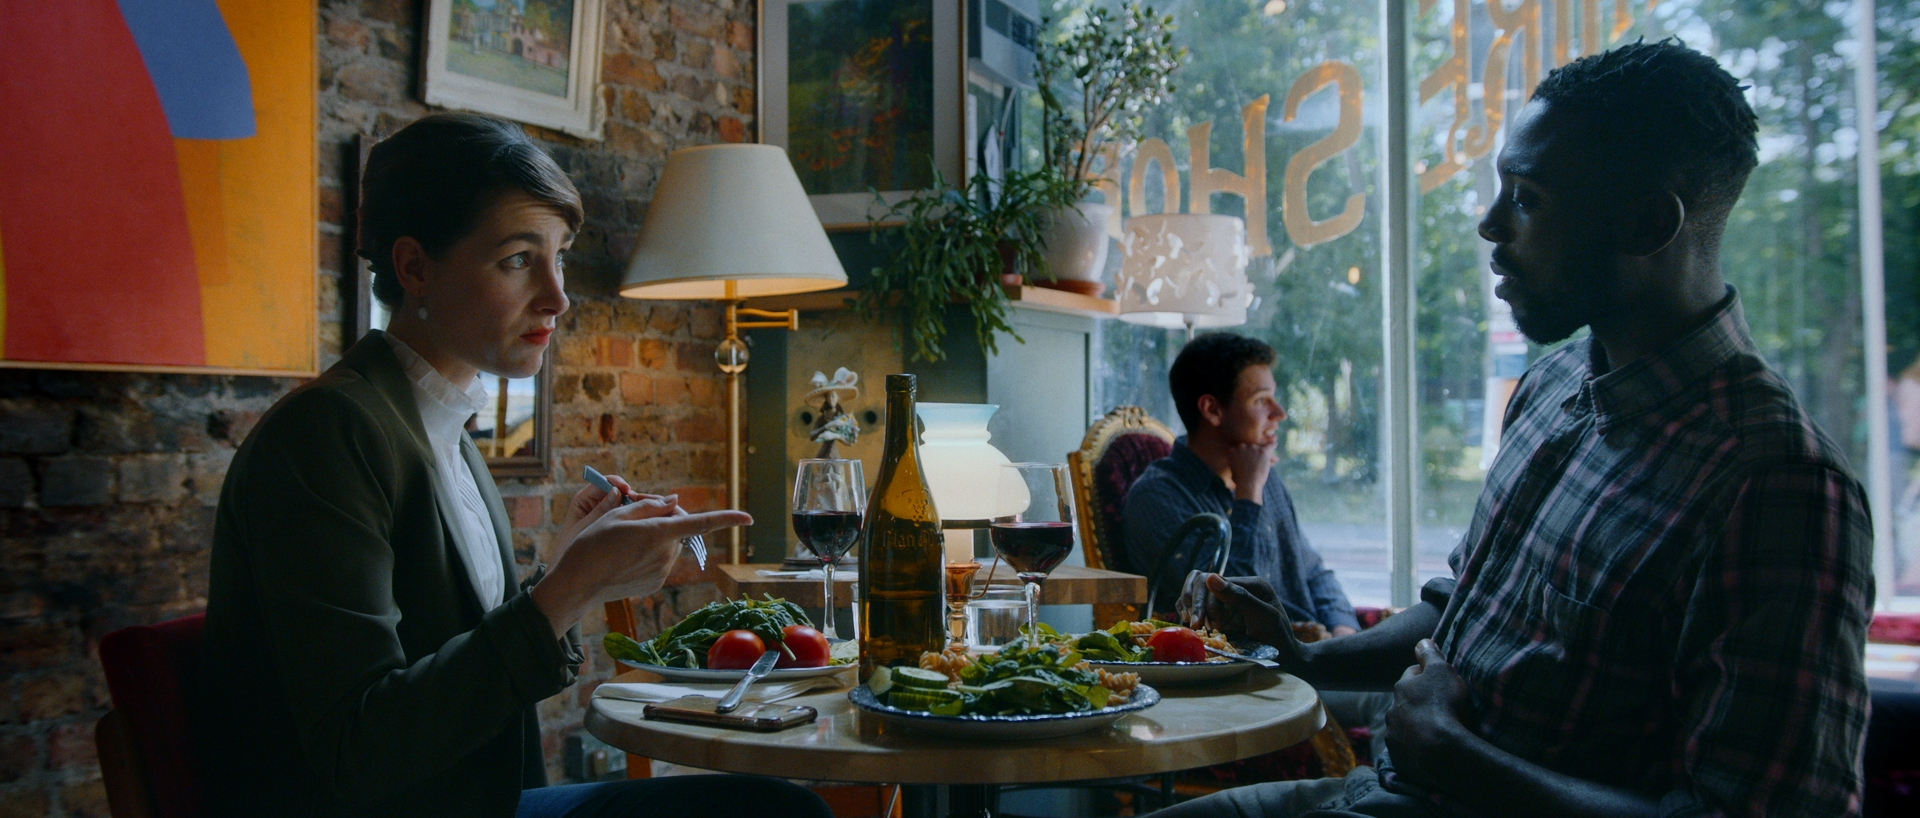 A young brunette Caucasian woman sits across the table at a restaurant from a Black man. She appears unimpressed, while his mouth is open. There is a table of food in front of them, as well as a brick wall with art and a window behind them with part of the writing . A man sits near the window.